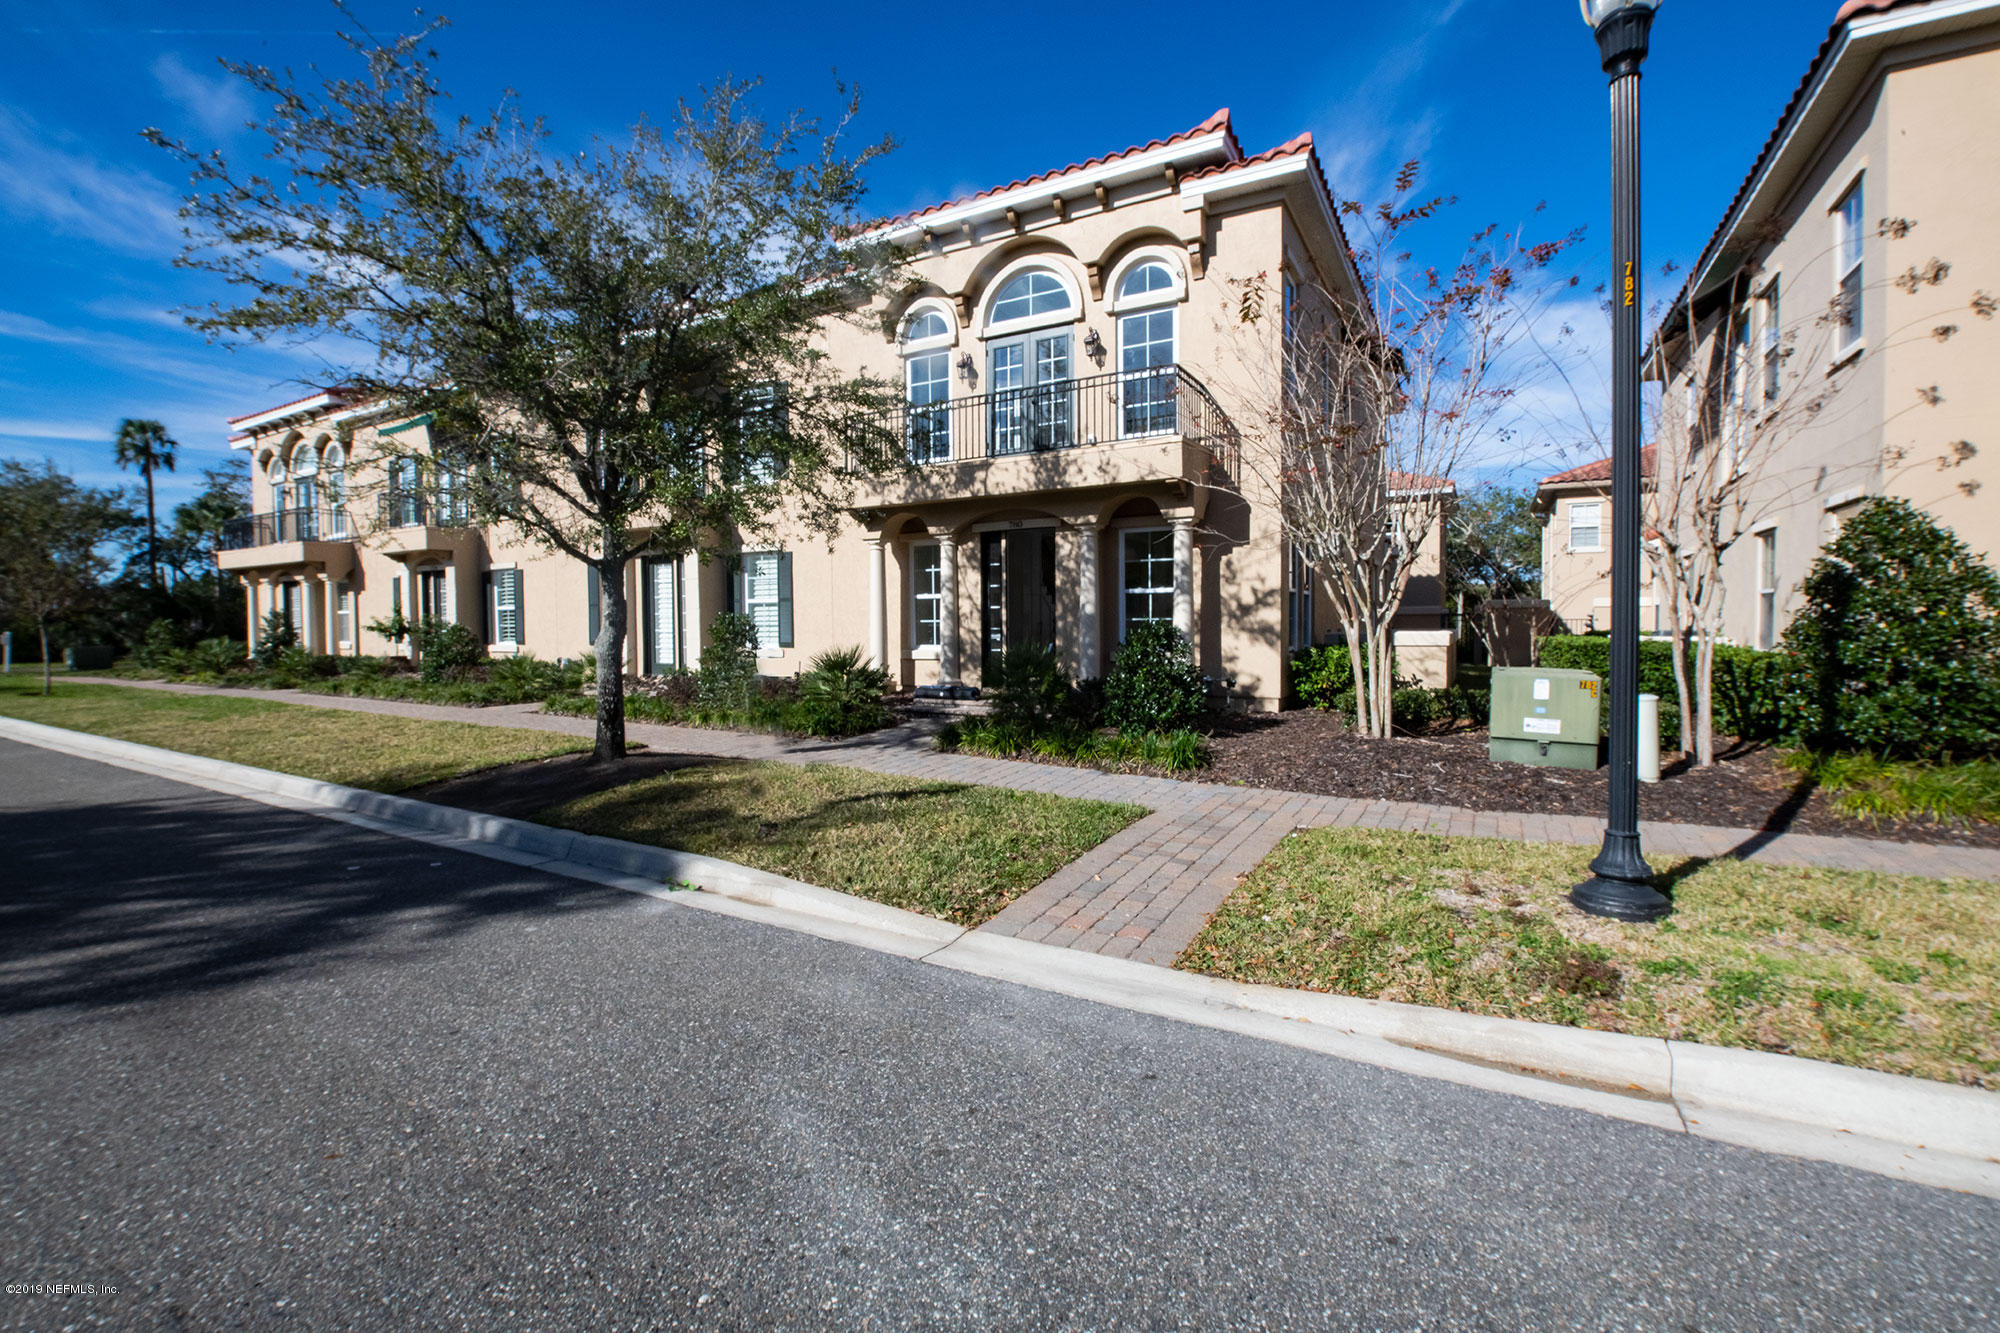 780 PROVIDENCE ISLAND, JACKSONVILLE, FLORIDA 32225, 4 Bedrooms Bedrooms, ,4 BathroomsBathrooms,Residential - townhome,For sale,PROVIDENCE ISLAND,1010032